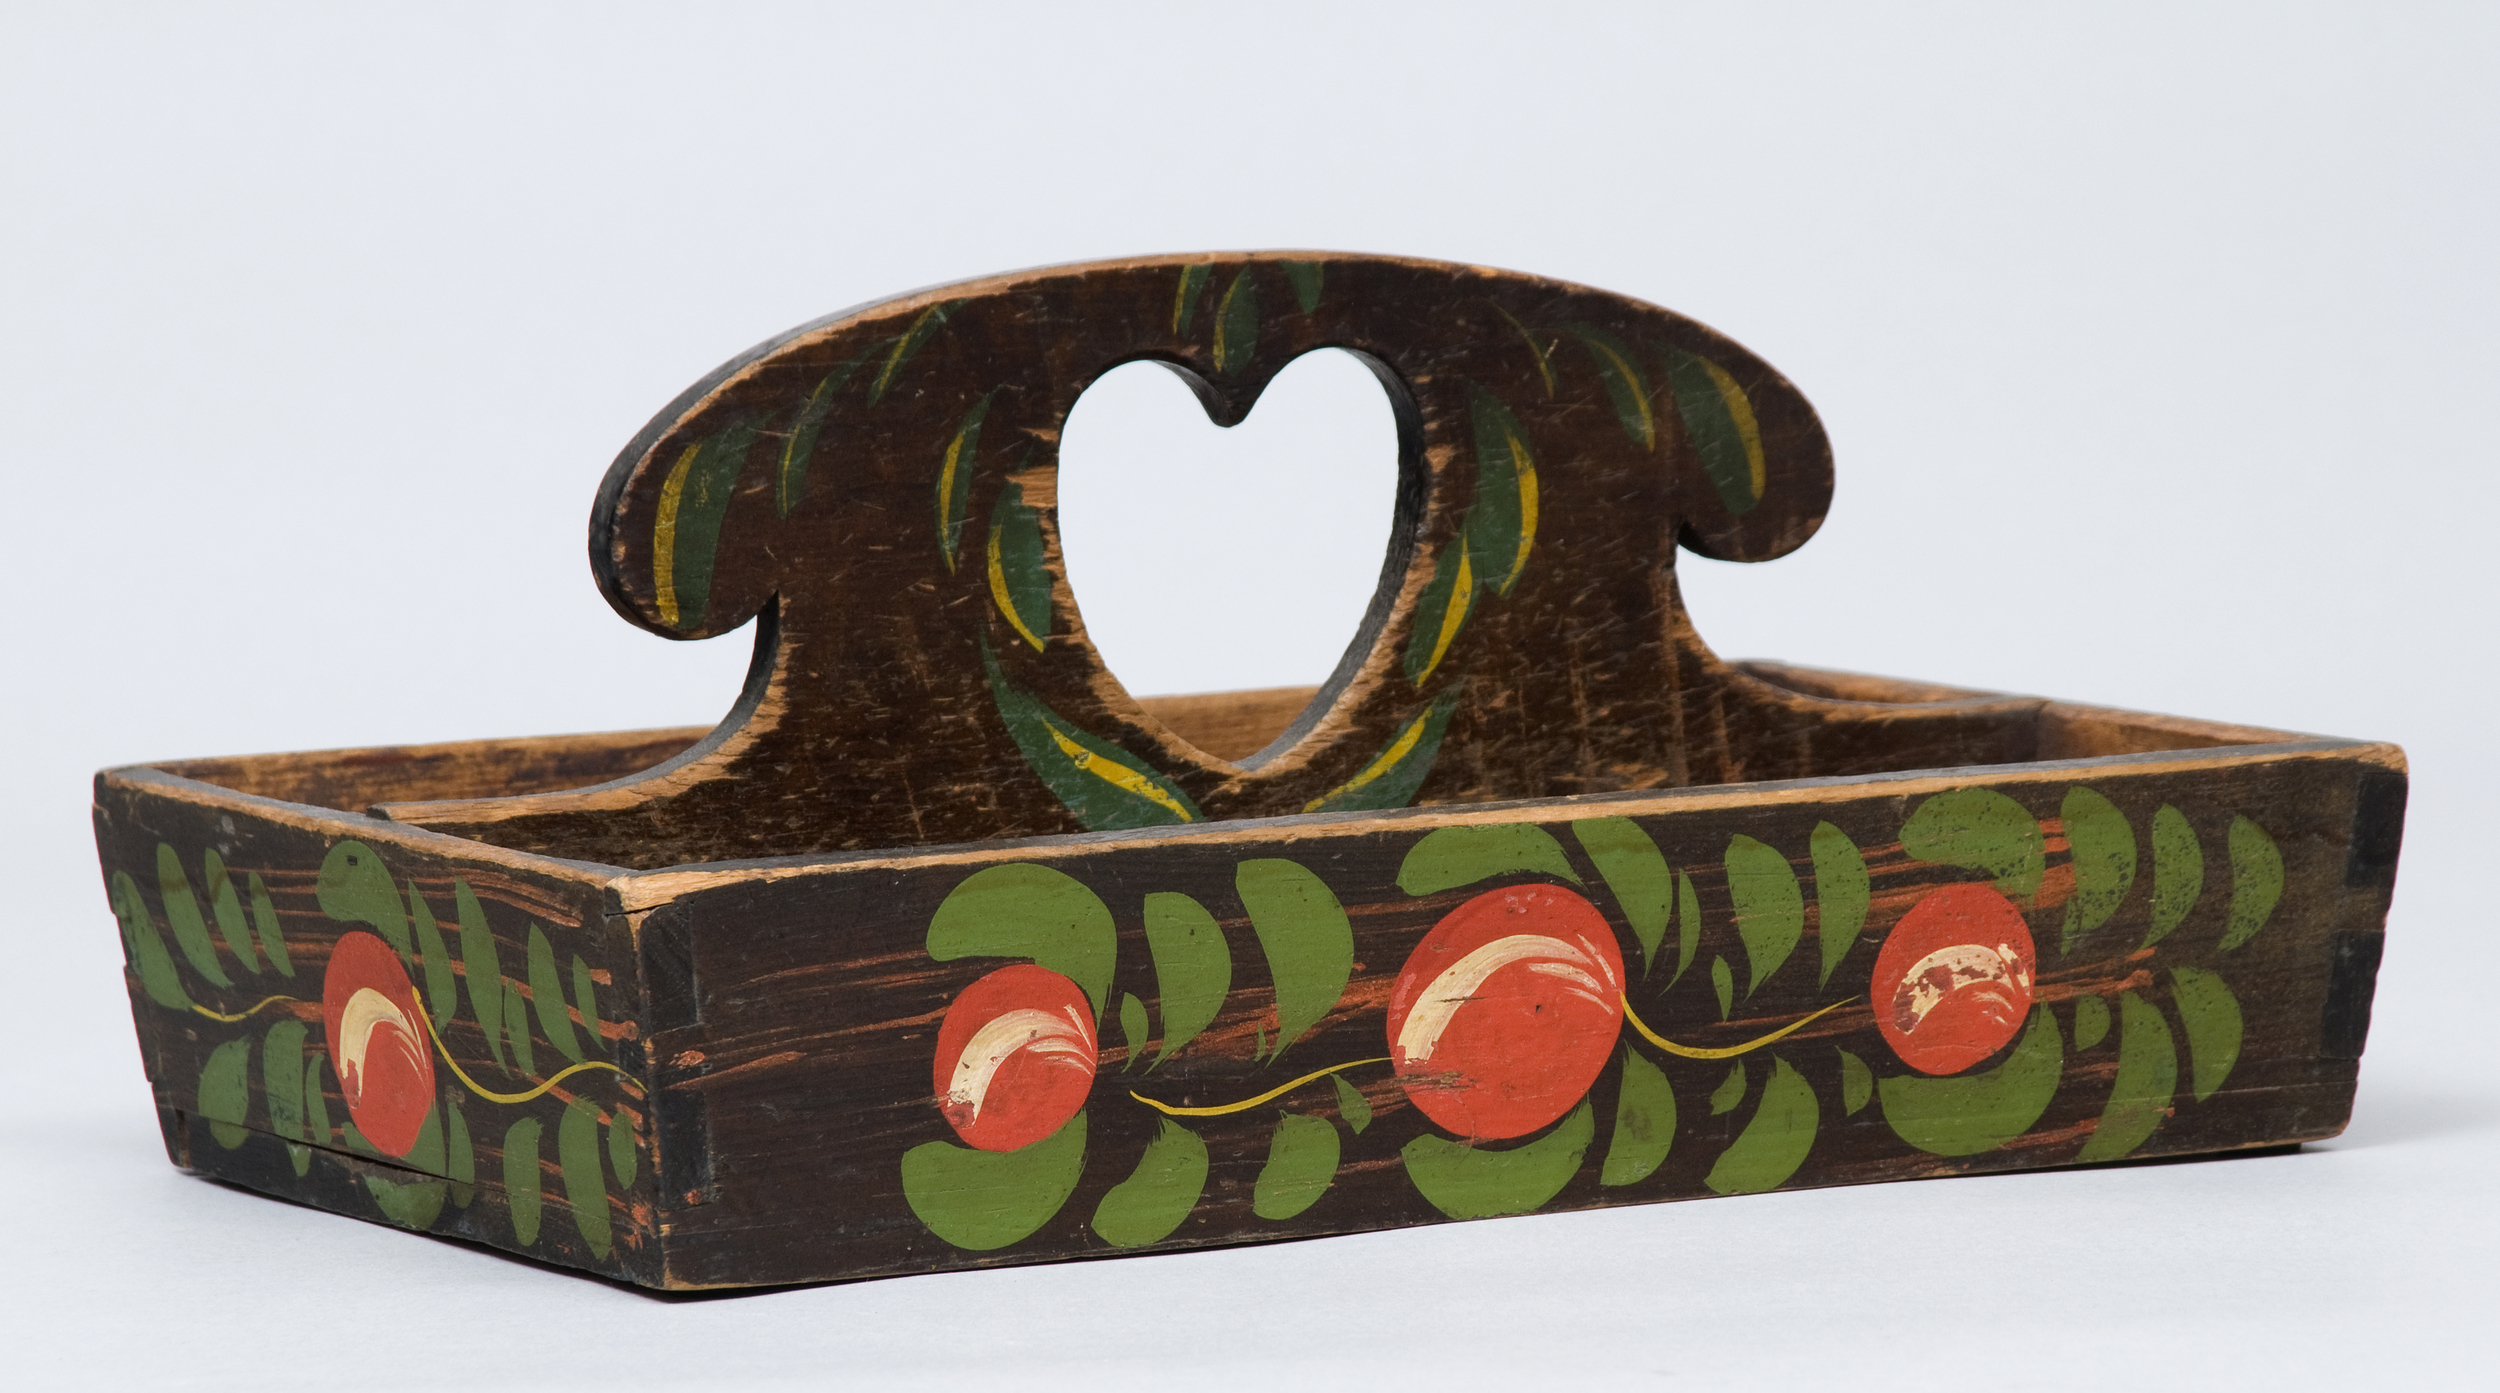 PAINT-DECORATED CUTLERY BOX WITH HEART CUTOUT HANDLE